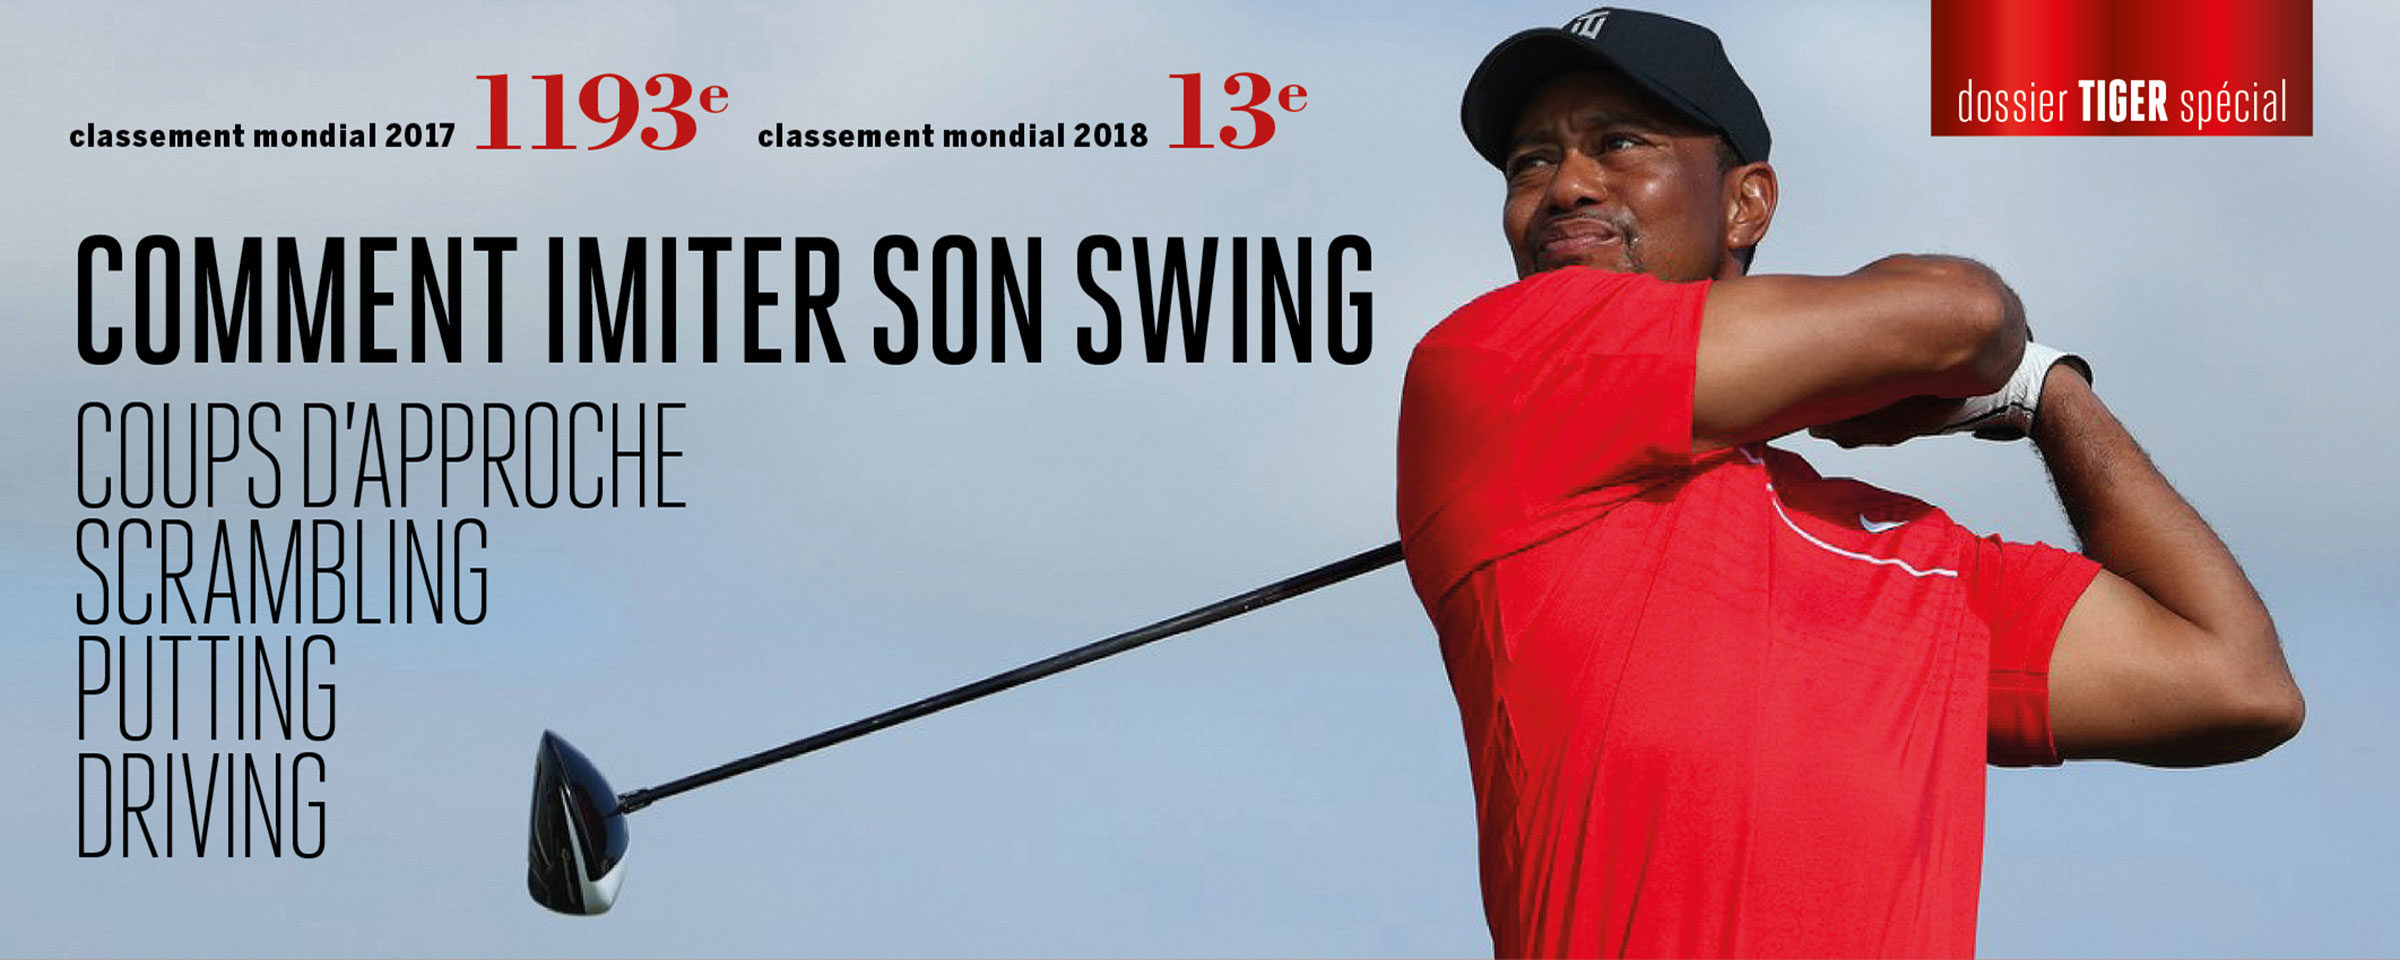 Comment imiter le swing de Tiger Woods